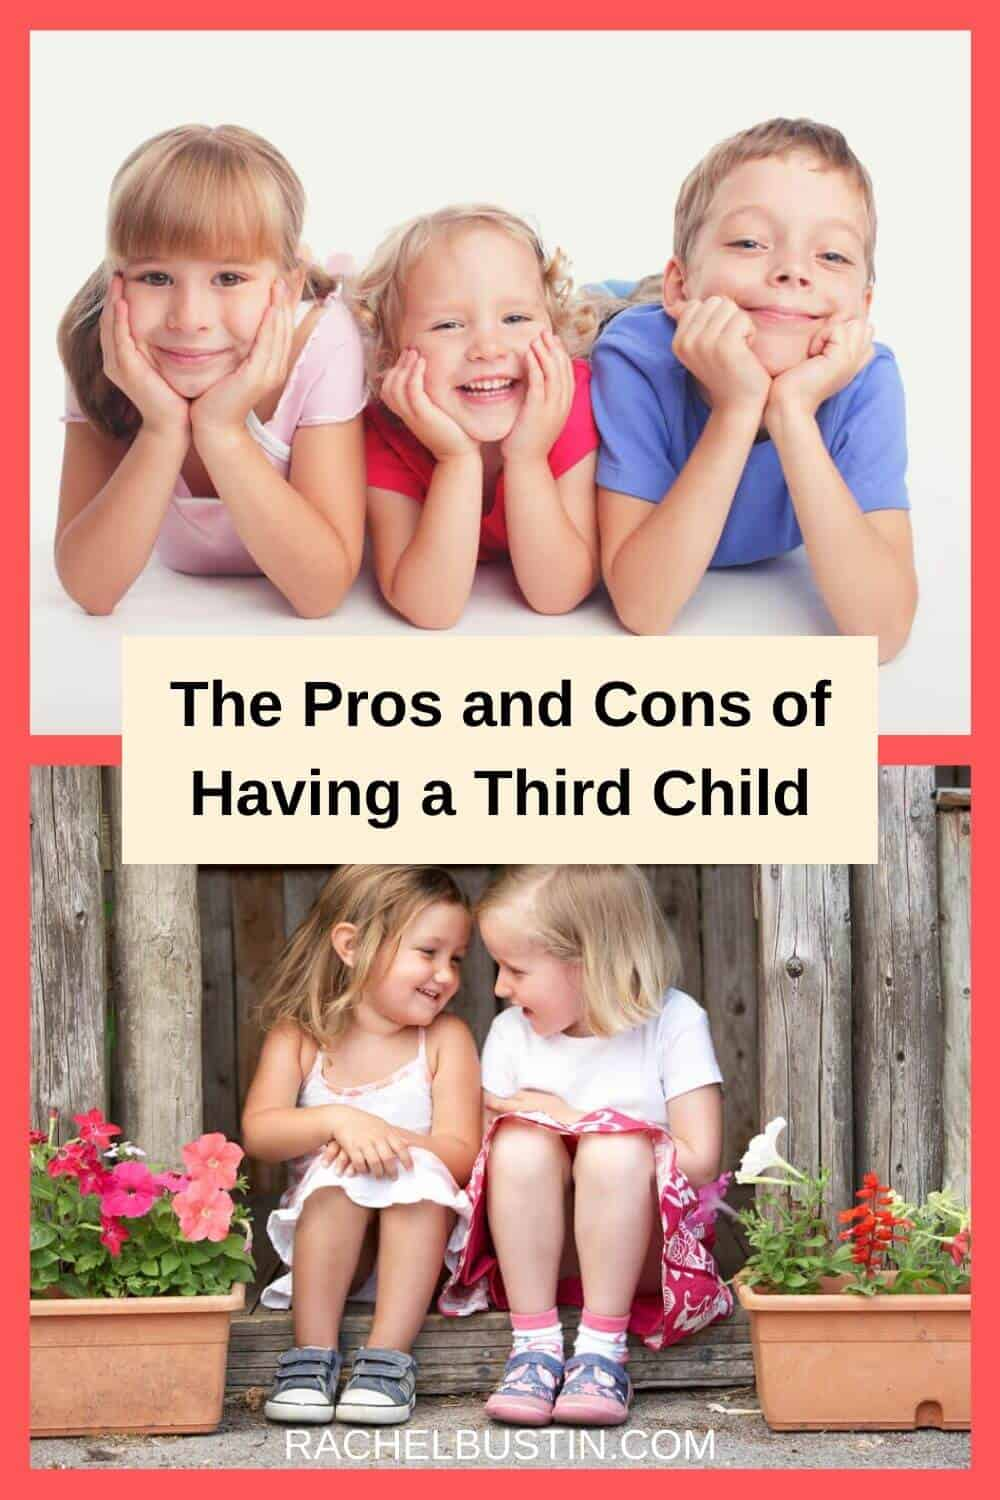 The Pros and Cons of Having a Third Child - considering a third child? Here are some tips to help you decide